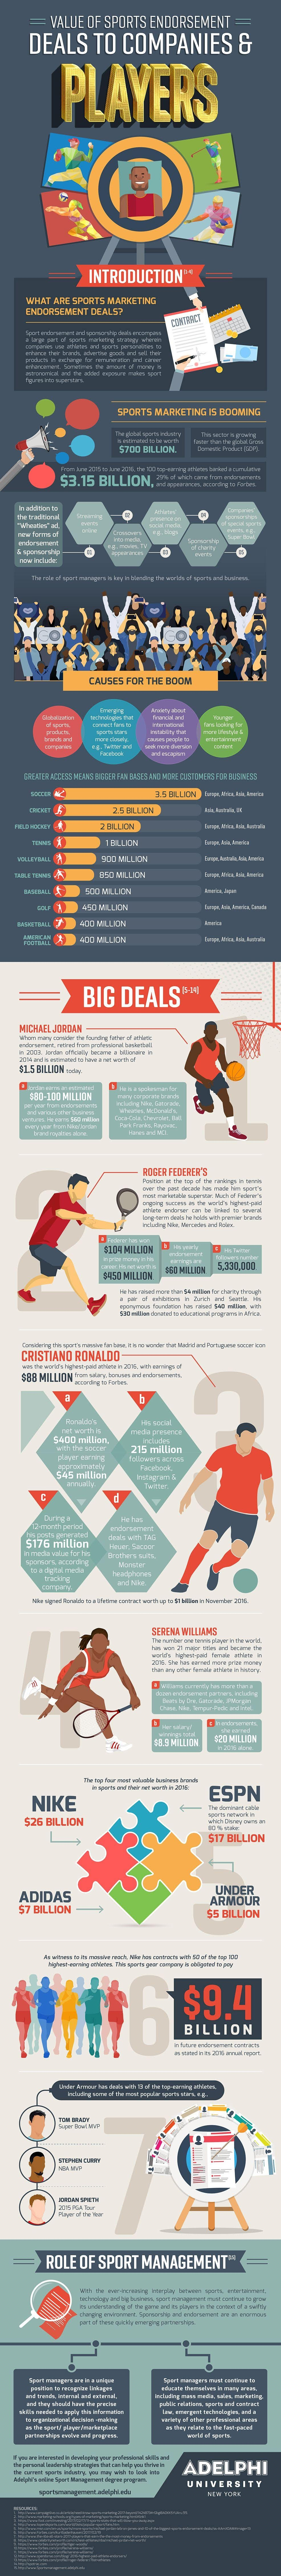 Value Of Sports Endorsement Deals To Companies & Players #infographic